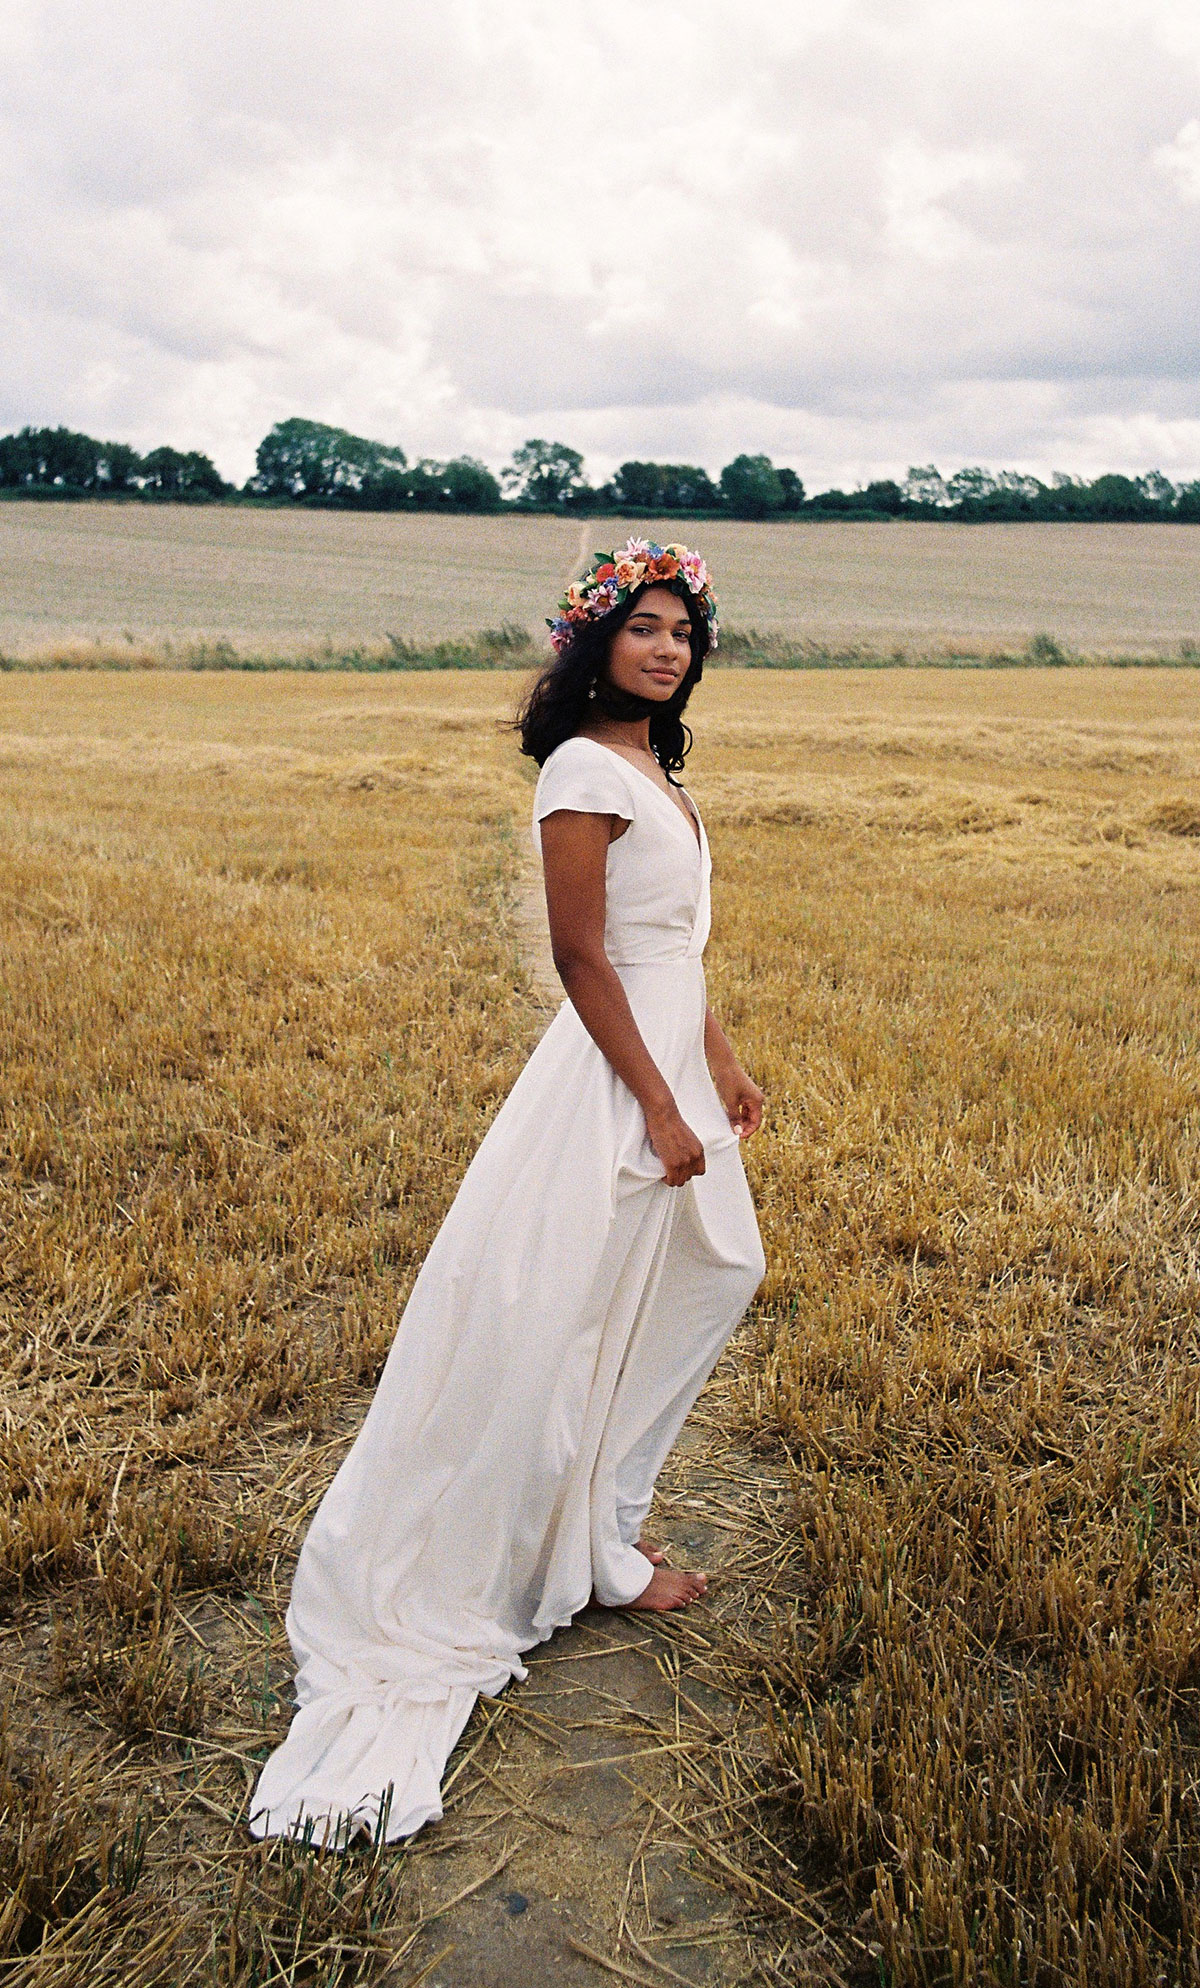 Maple by Sophie Rose Bridal - Hampshire Bridal Designer at Brides of Winchester, Winchester